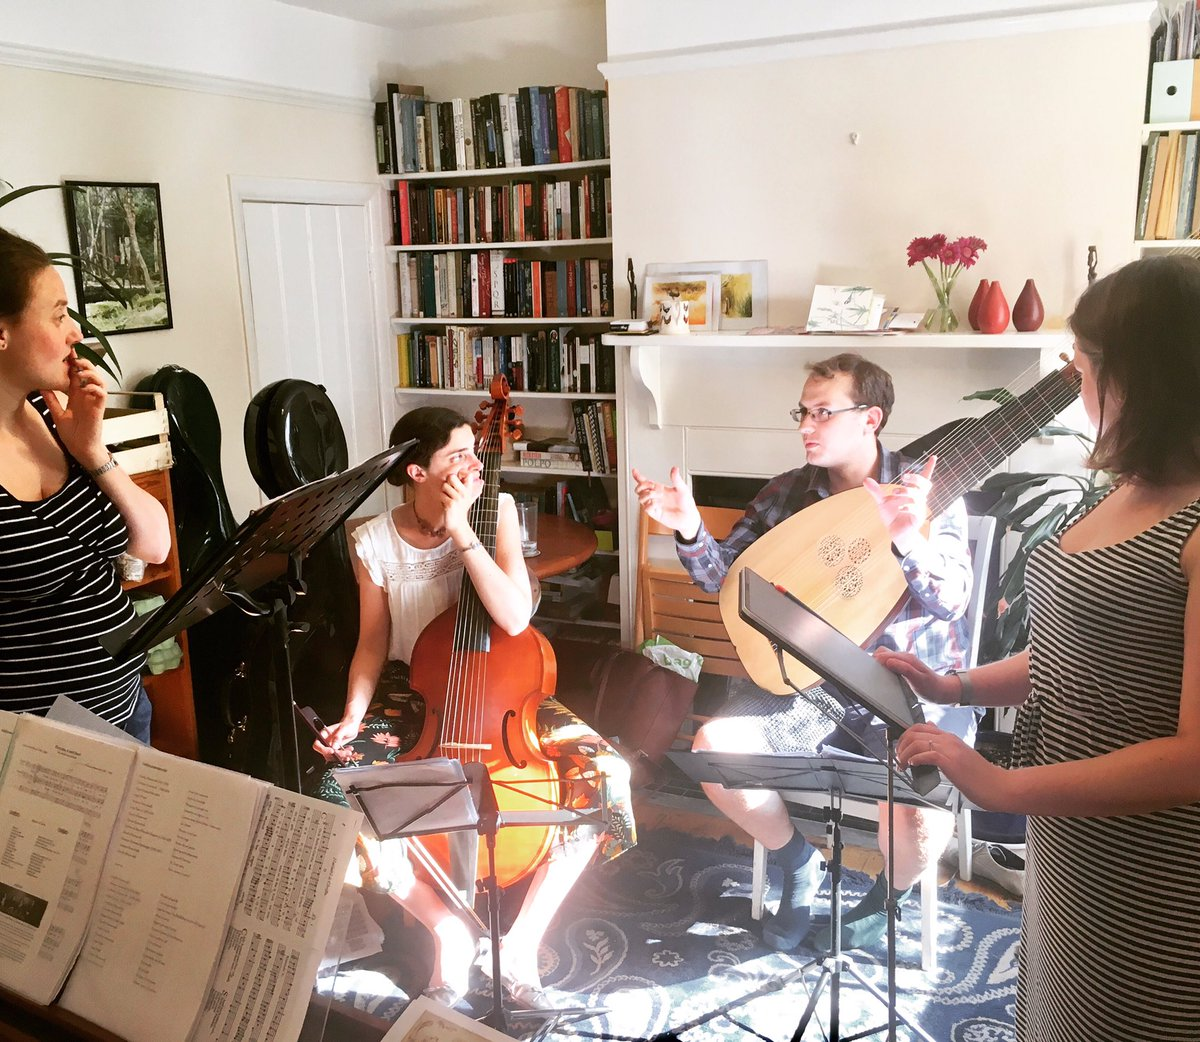 RT @Ceruleo_uk We had a rehearsal🎶yesterday in preparation for the outing✨ of our new programme The Faithful Shepherdess. 🐑🐏🐑🐏🐑  ❤️👫💔 Thursday 25th July 19:30 @cornerHOUSEarts @SurbitonSalons   INFO🎫 https://t.co/Ul5MnigoYT  #WorldEmojisDay #worldemojiday2019 #SurbitonSummerSalons2019